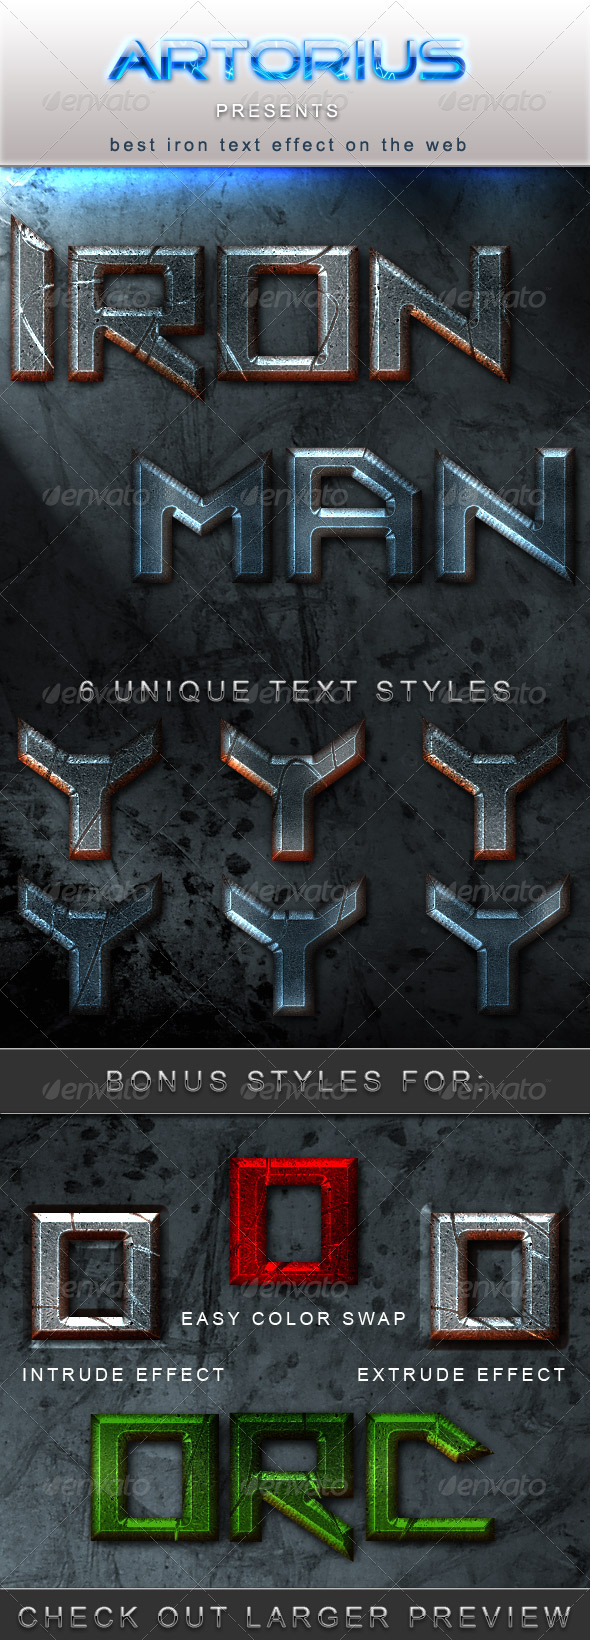 Iron Man Text Styles - Text Effects Styles